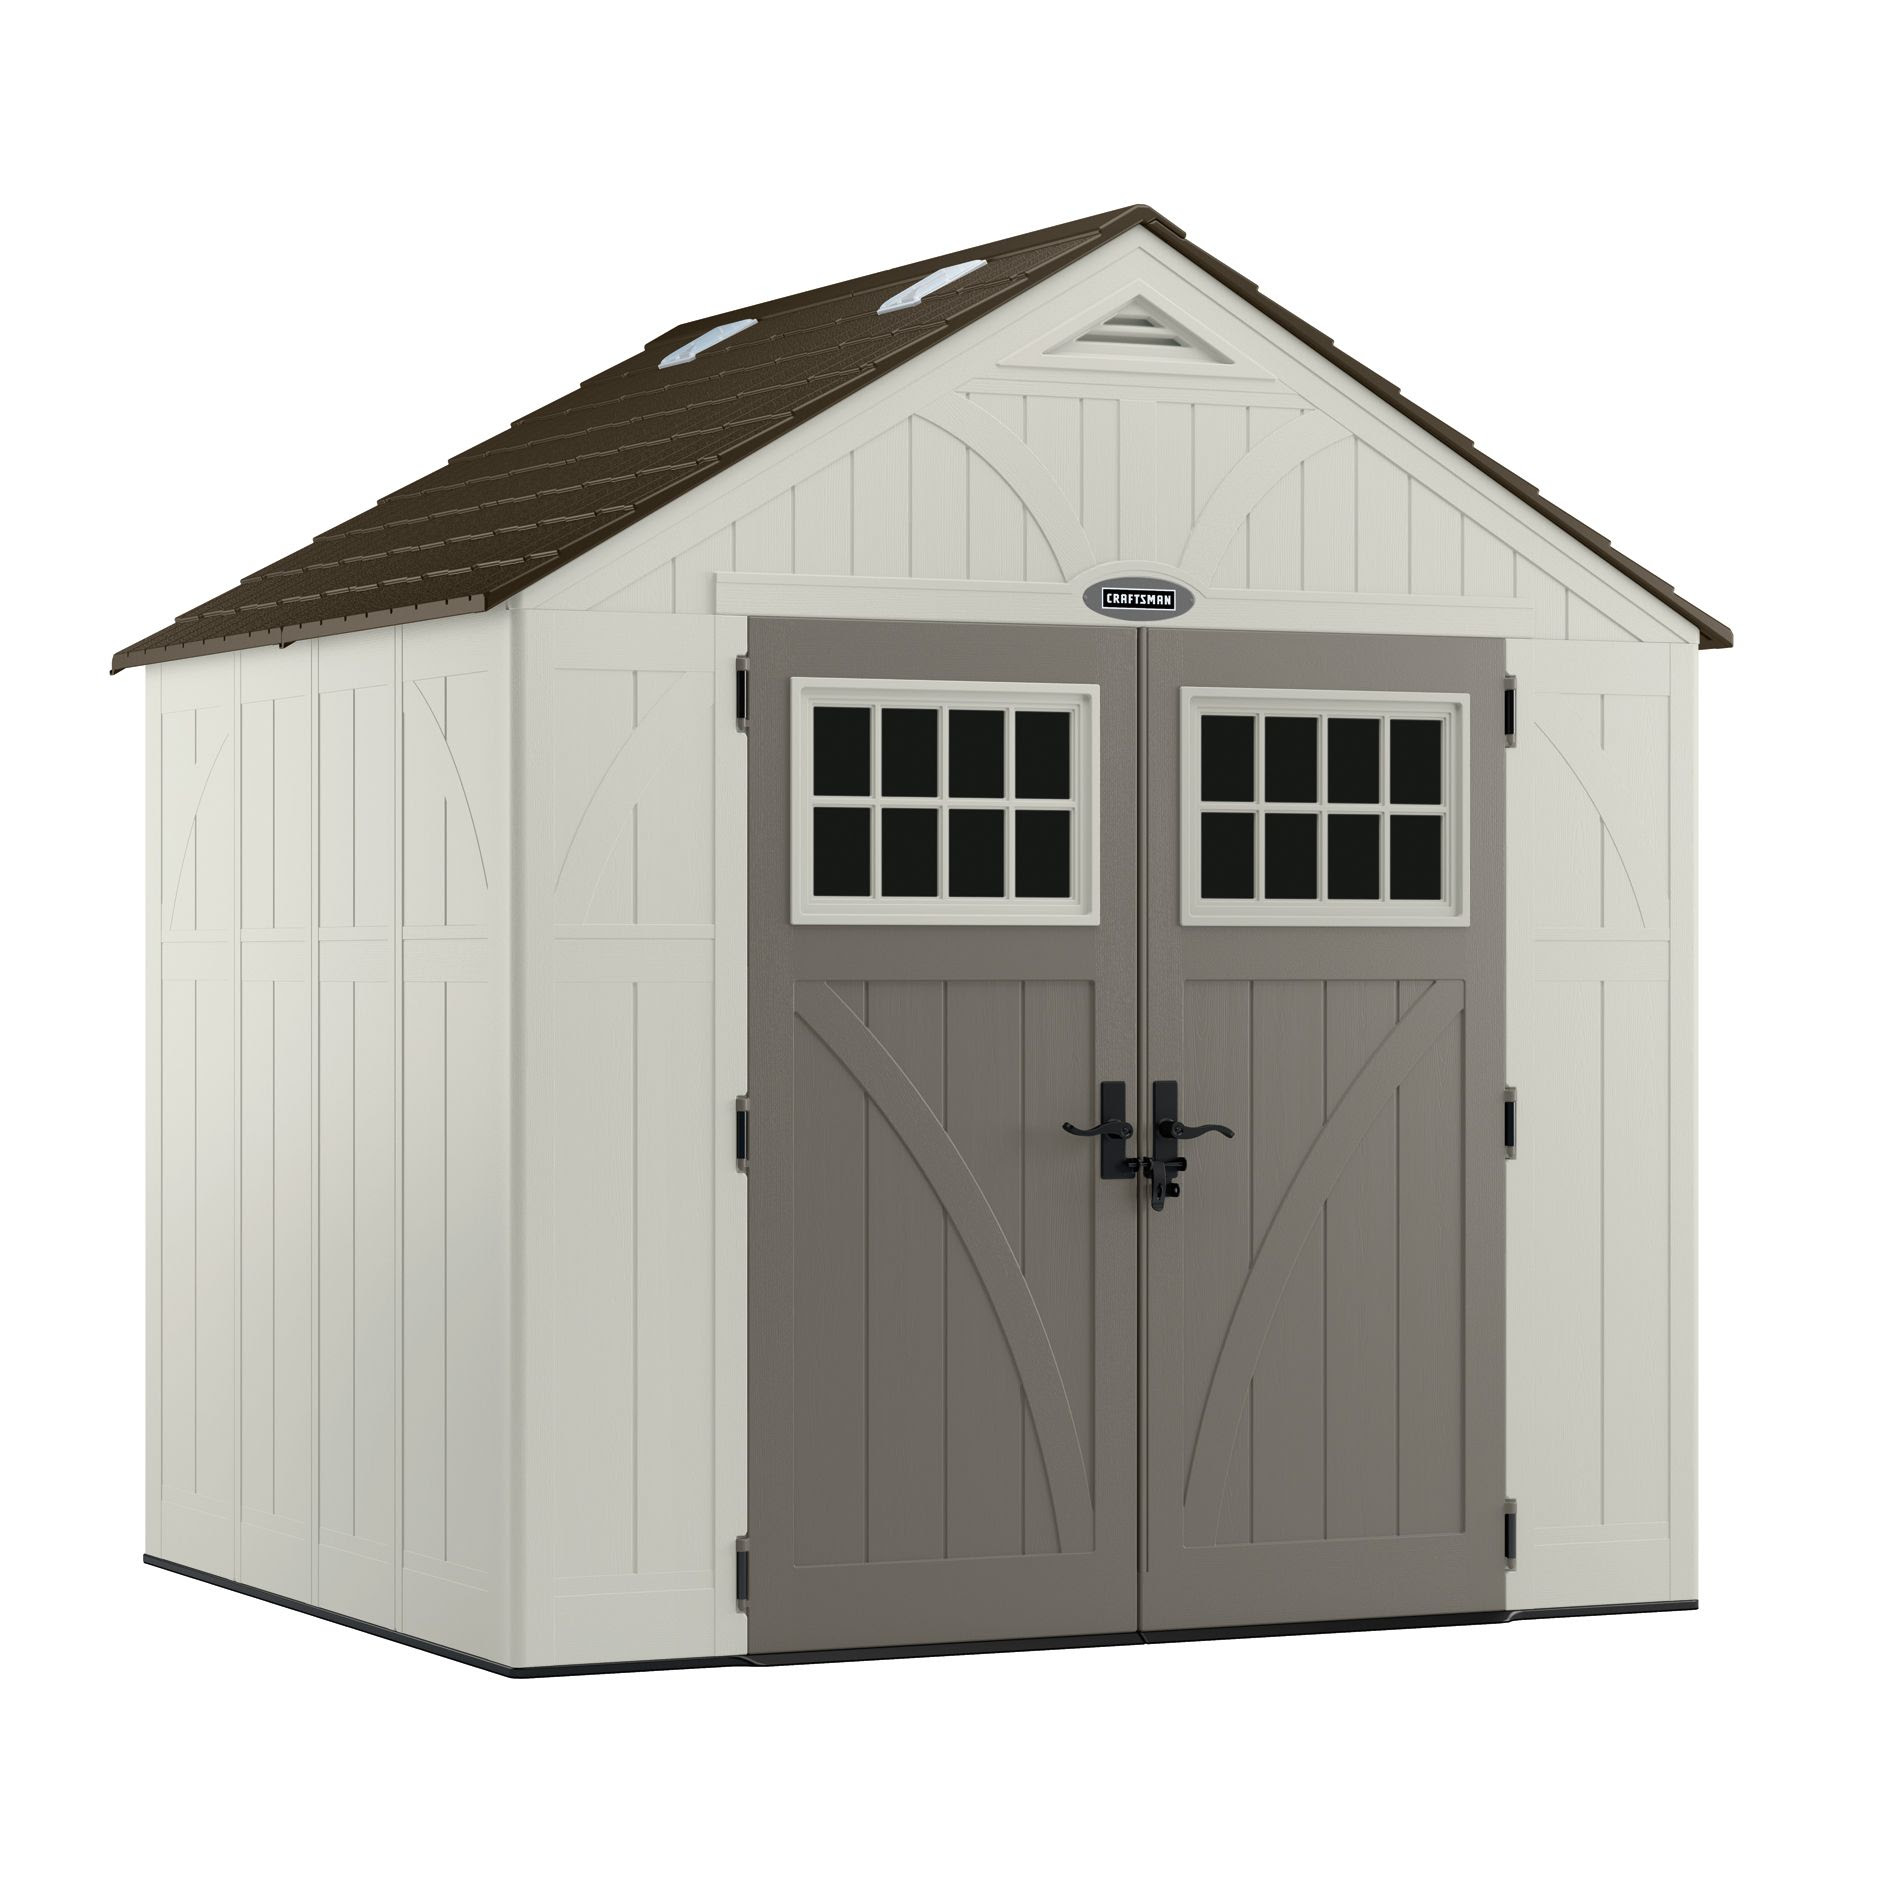 Craftsman 8 x 7 Storage Shed